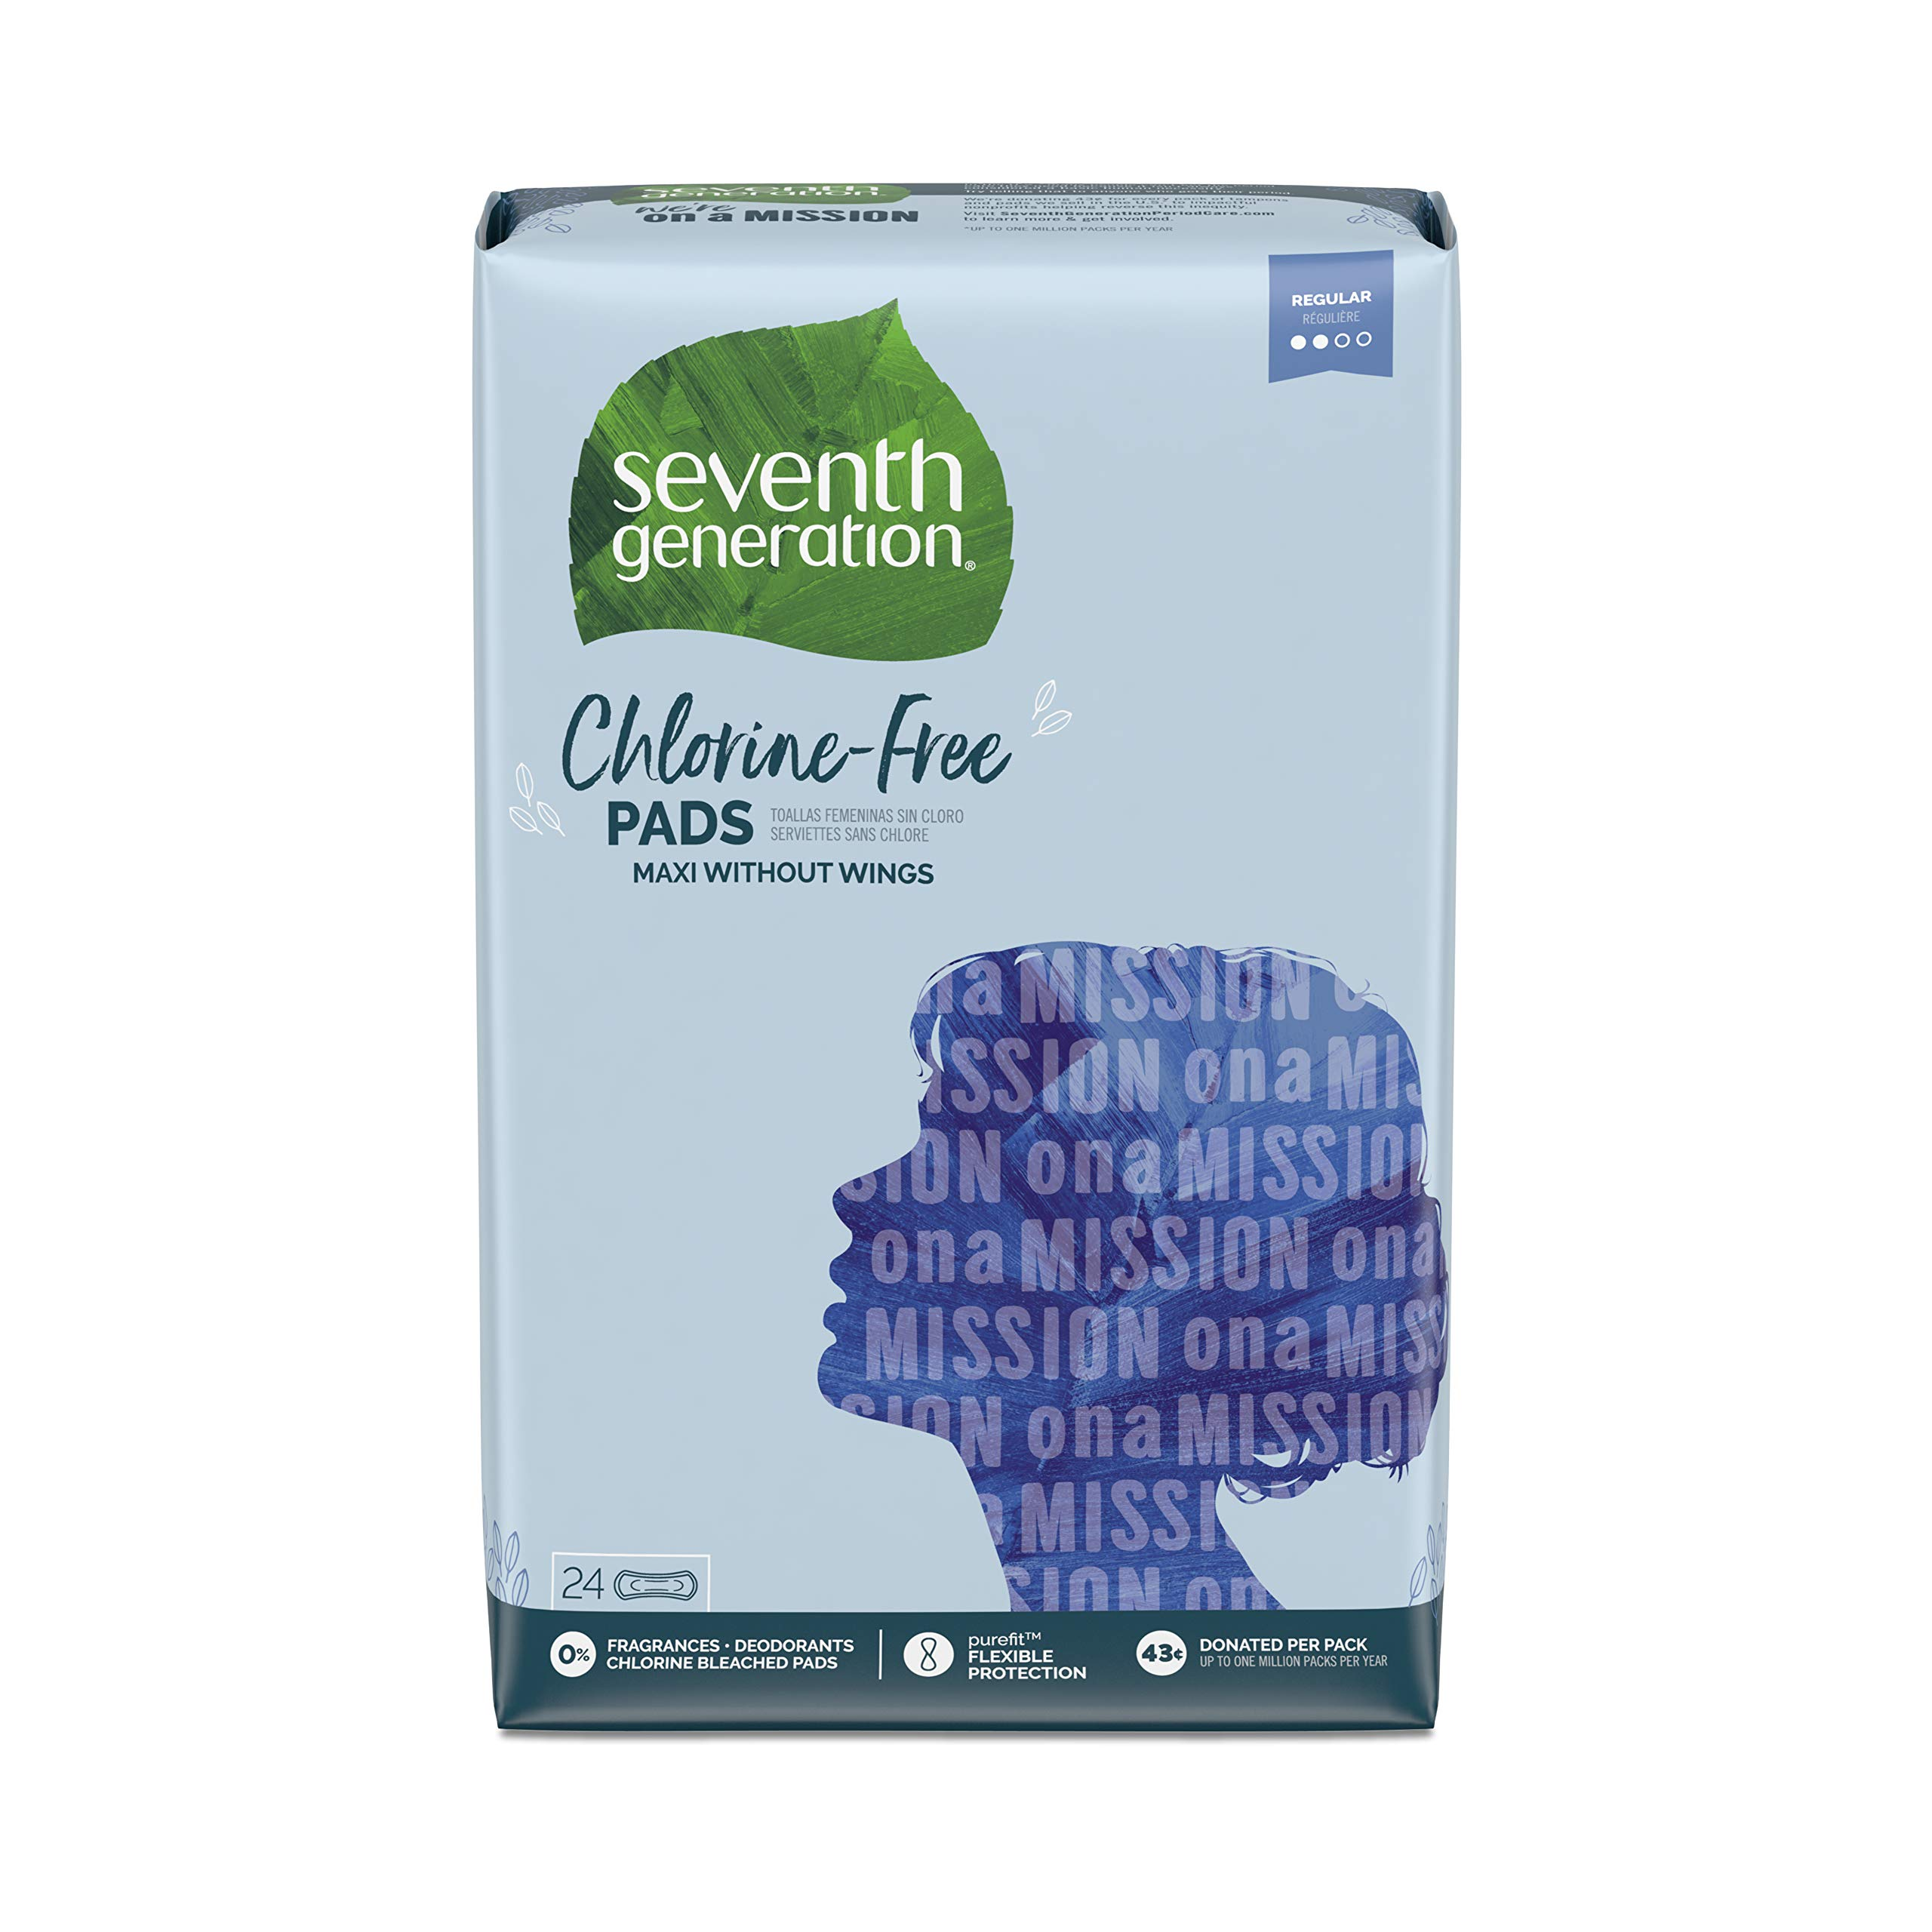 Seventh Generation Maxi Pads, Regular Absorbency, Chlorine Free, 24 count, 12 Pack (Packaging May Vary) by Seventh Generation